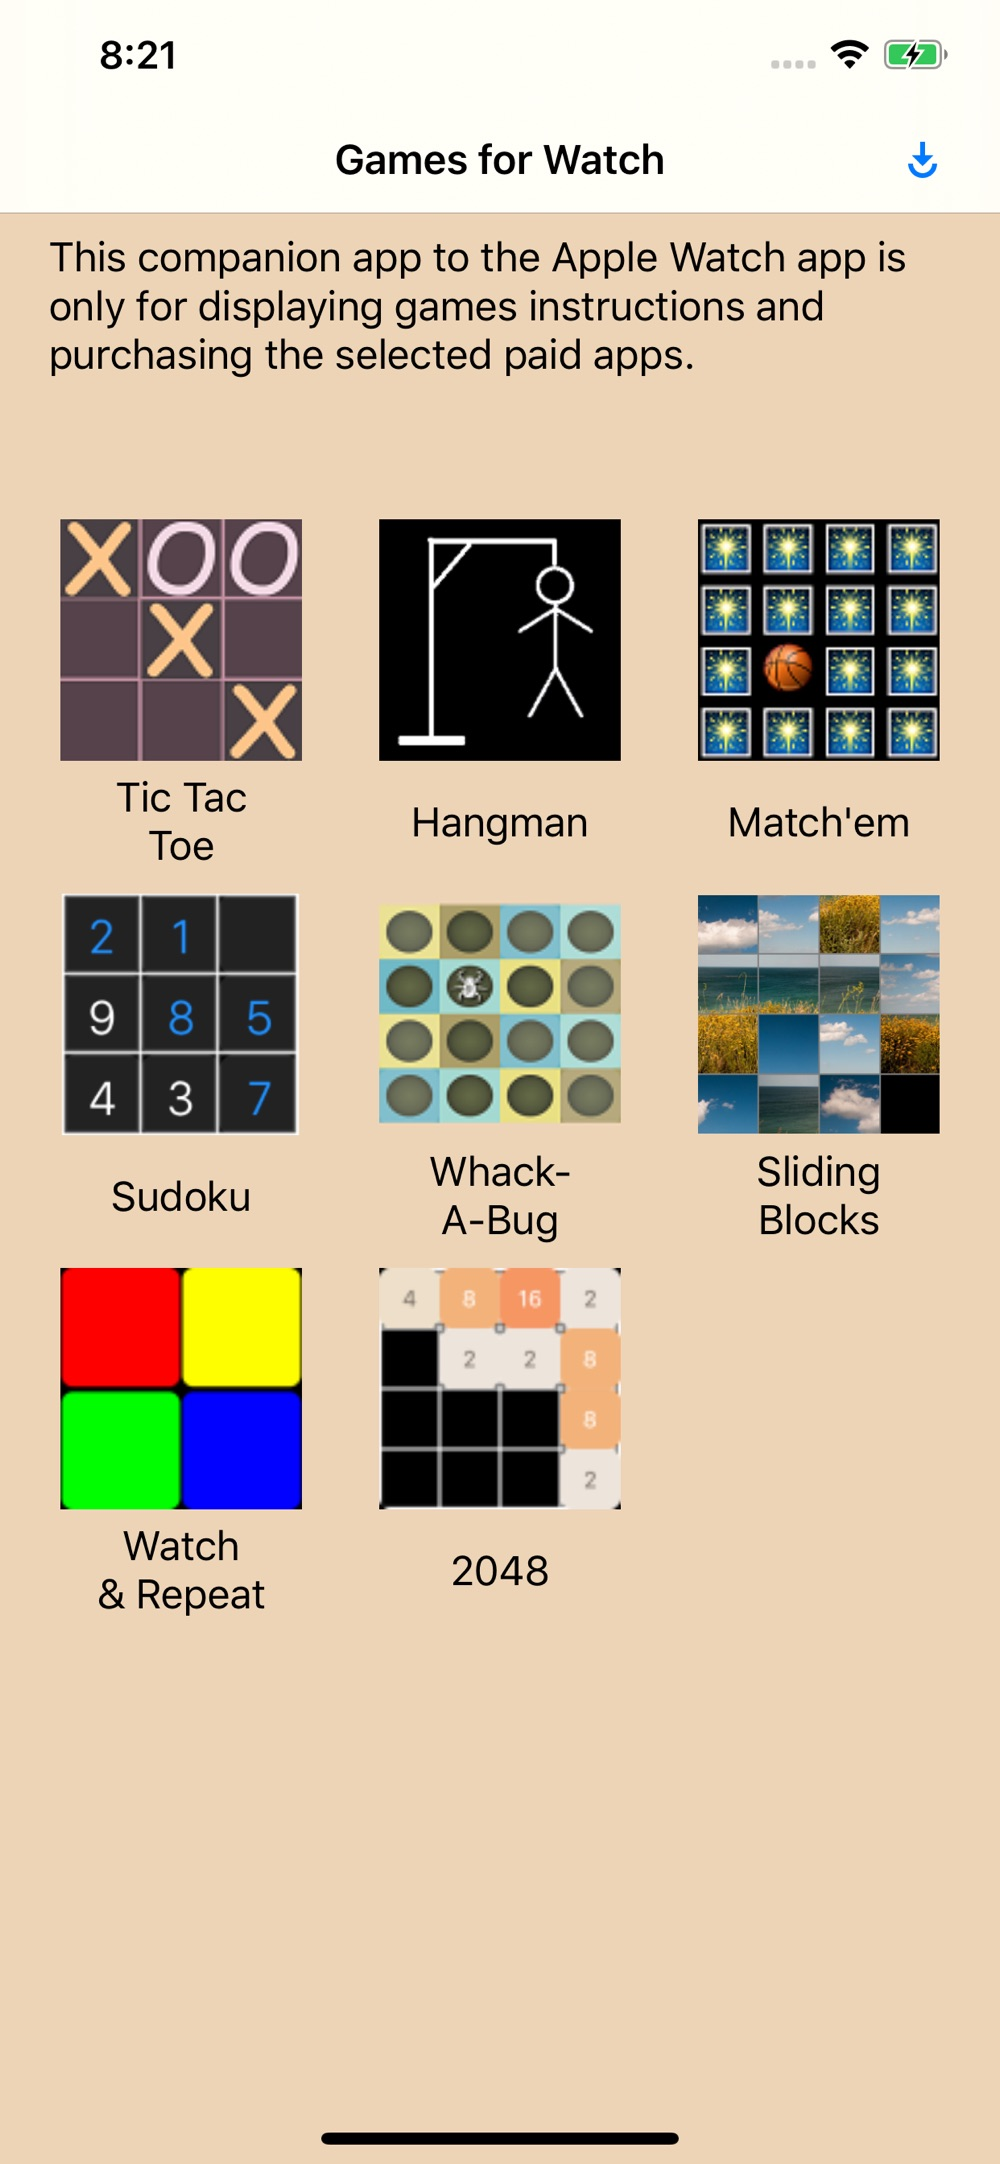 Games for Watch hack tool